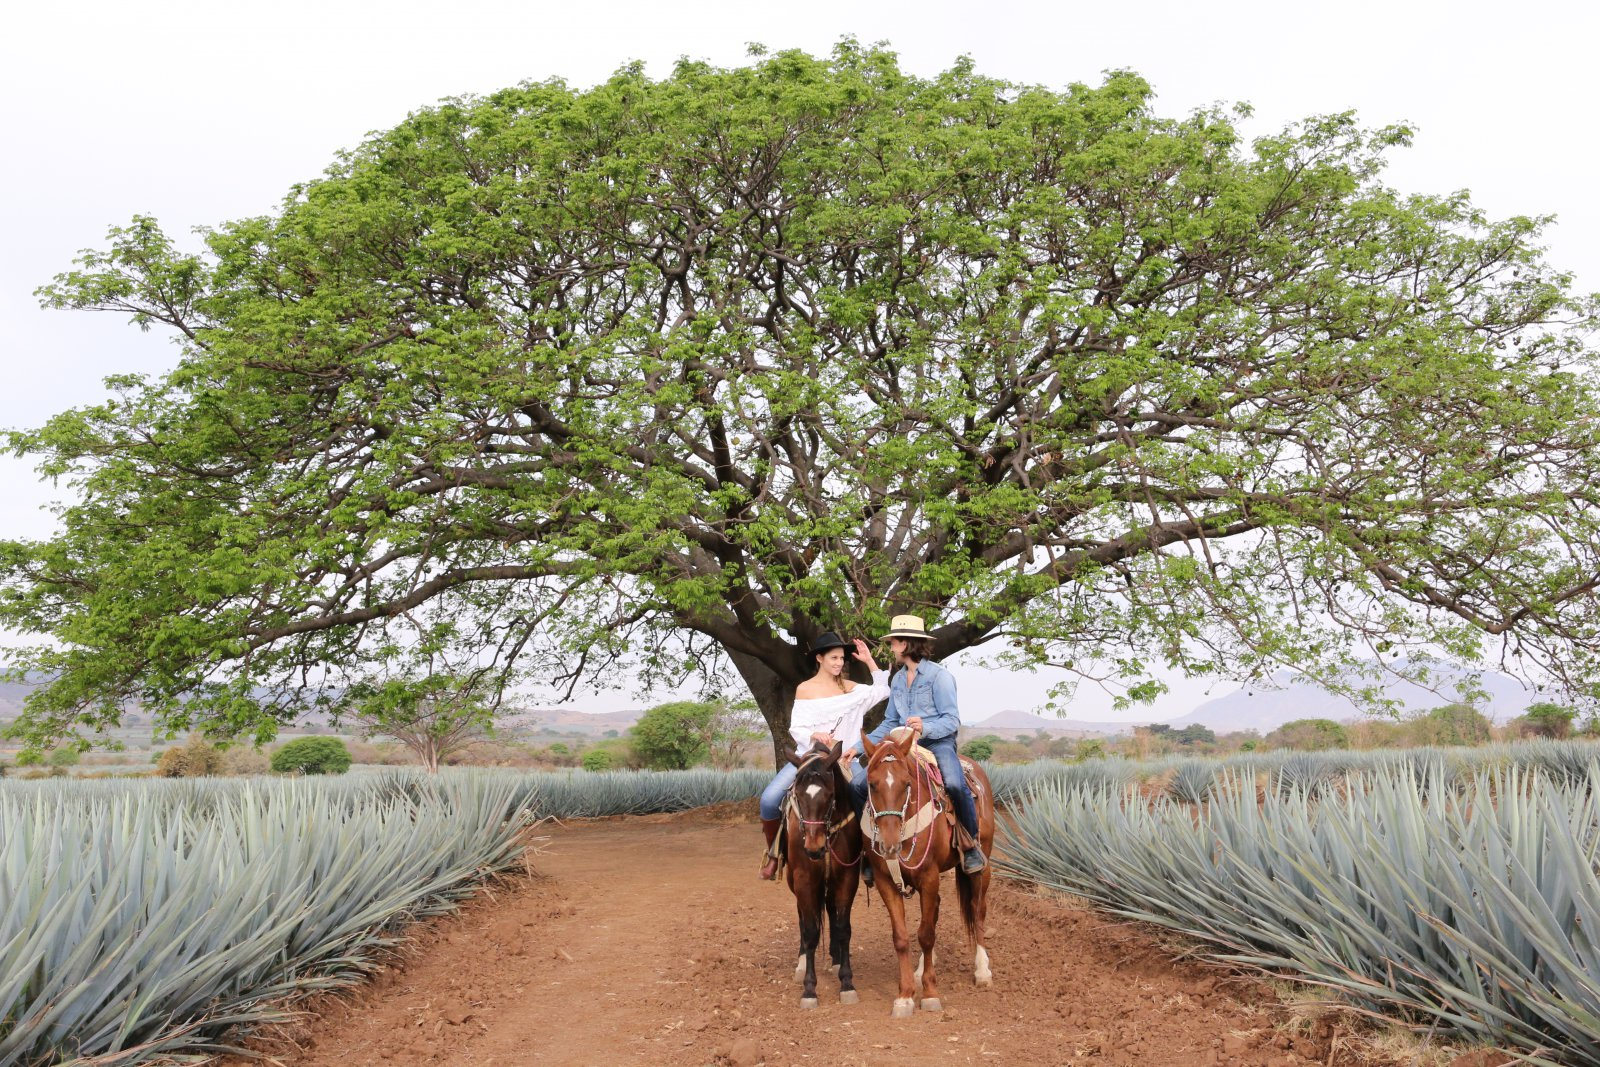 Agave fields with horses